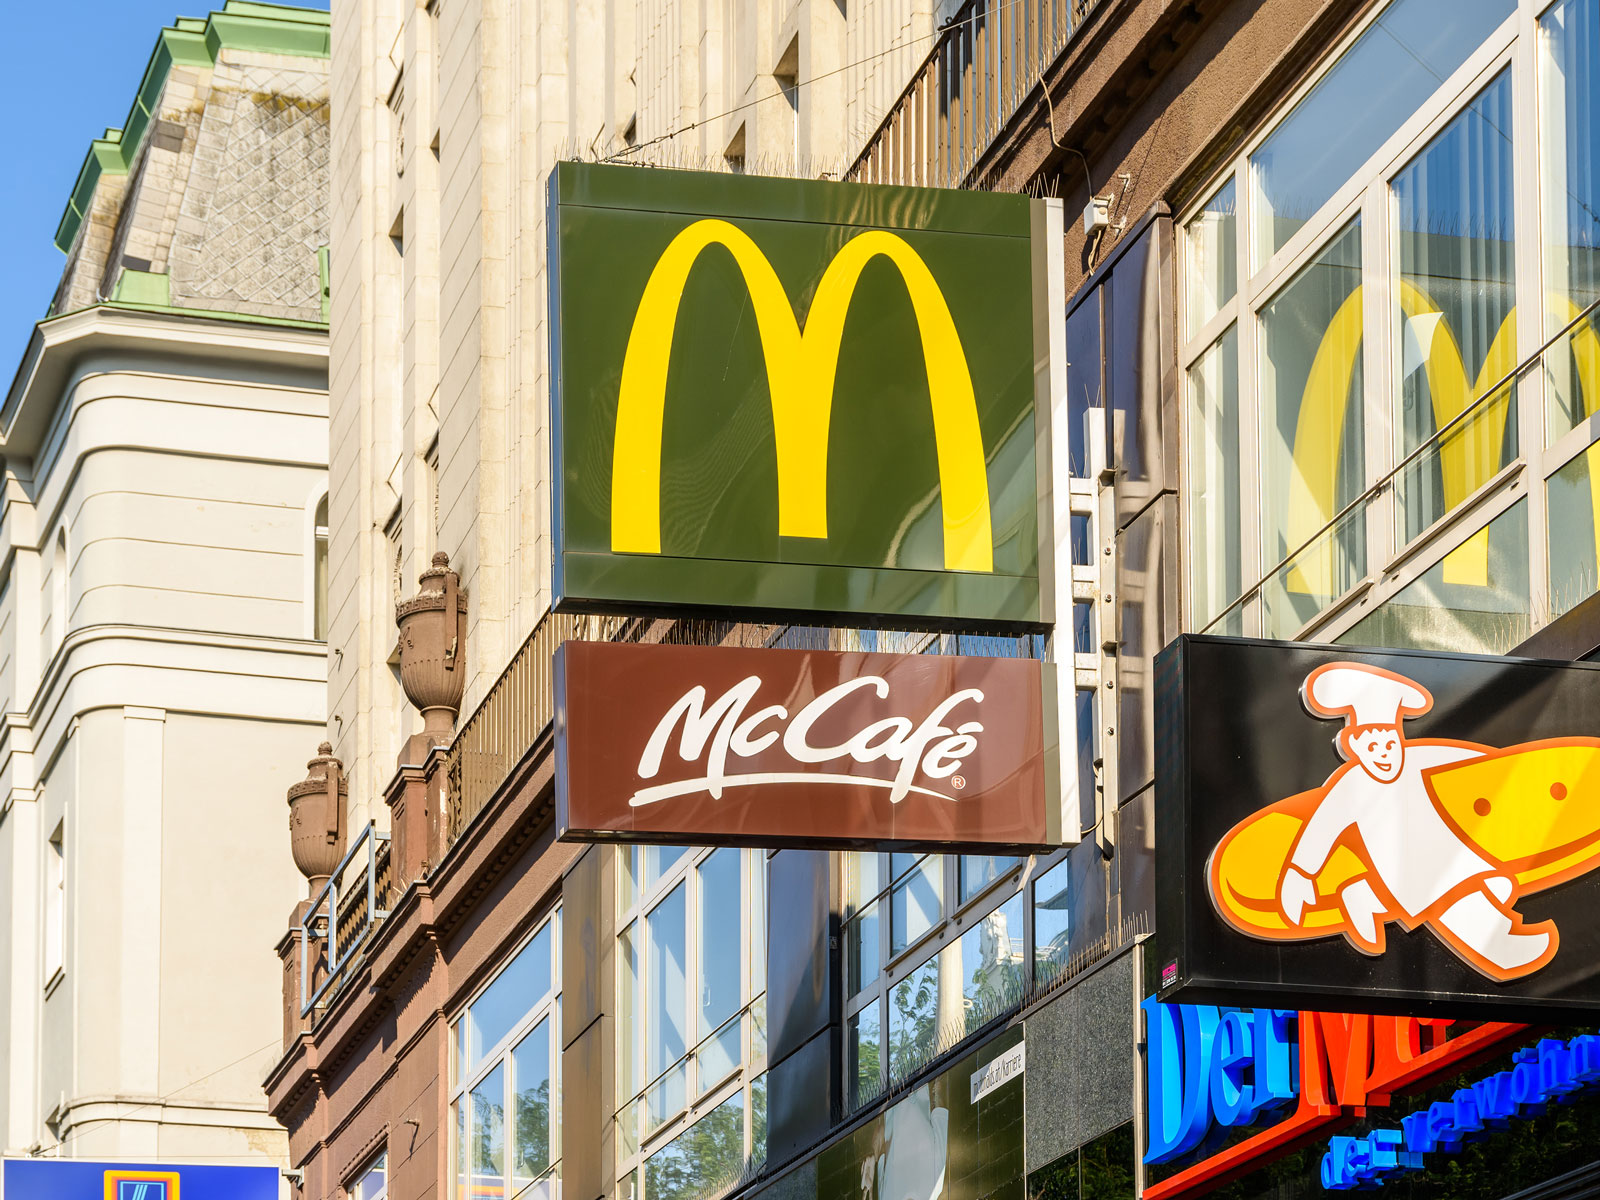 American Travelers in Austria Can Now Reach the U.S. Embassy from McDonald's